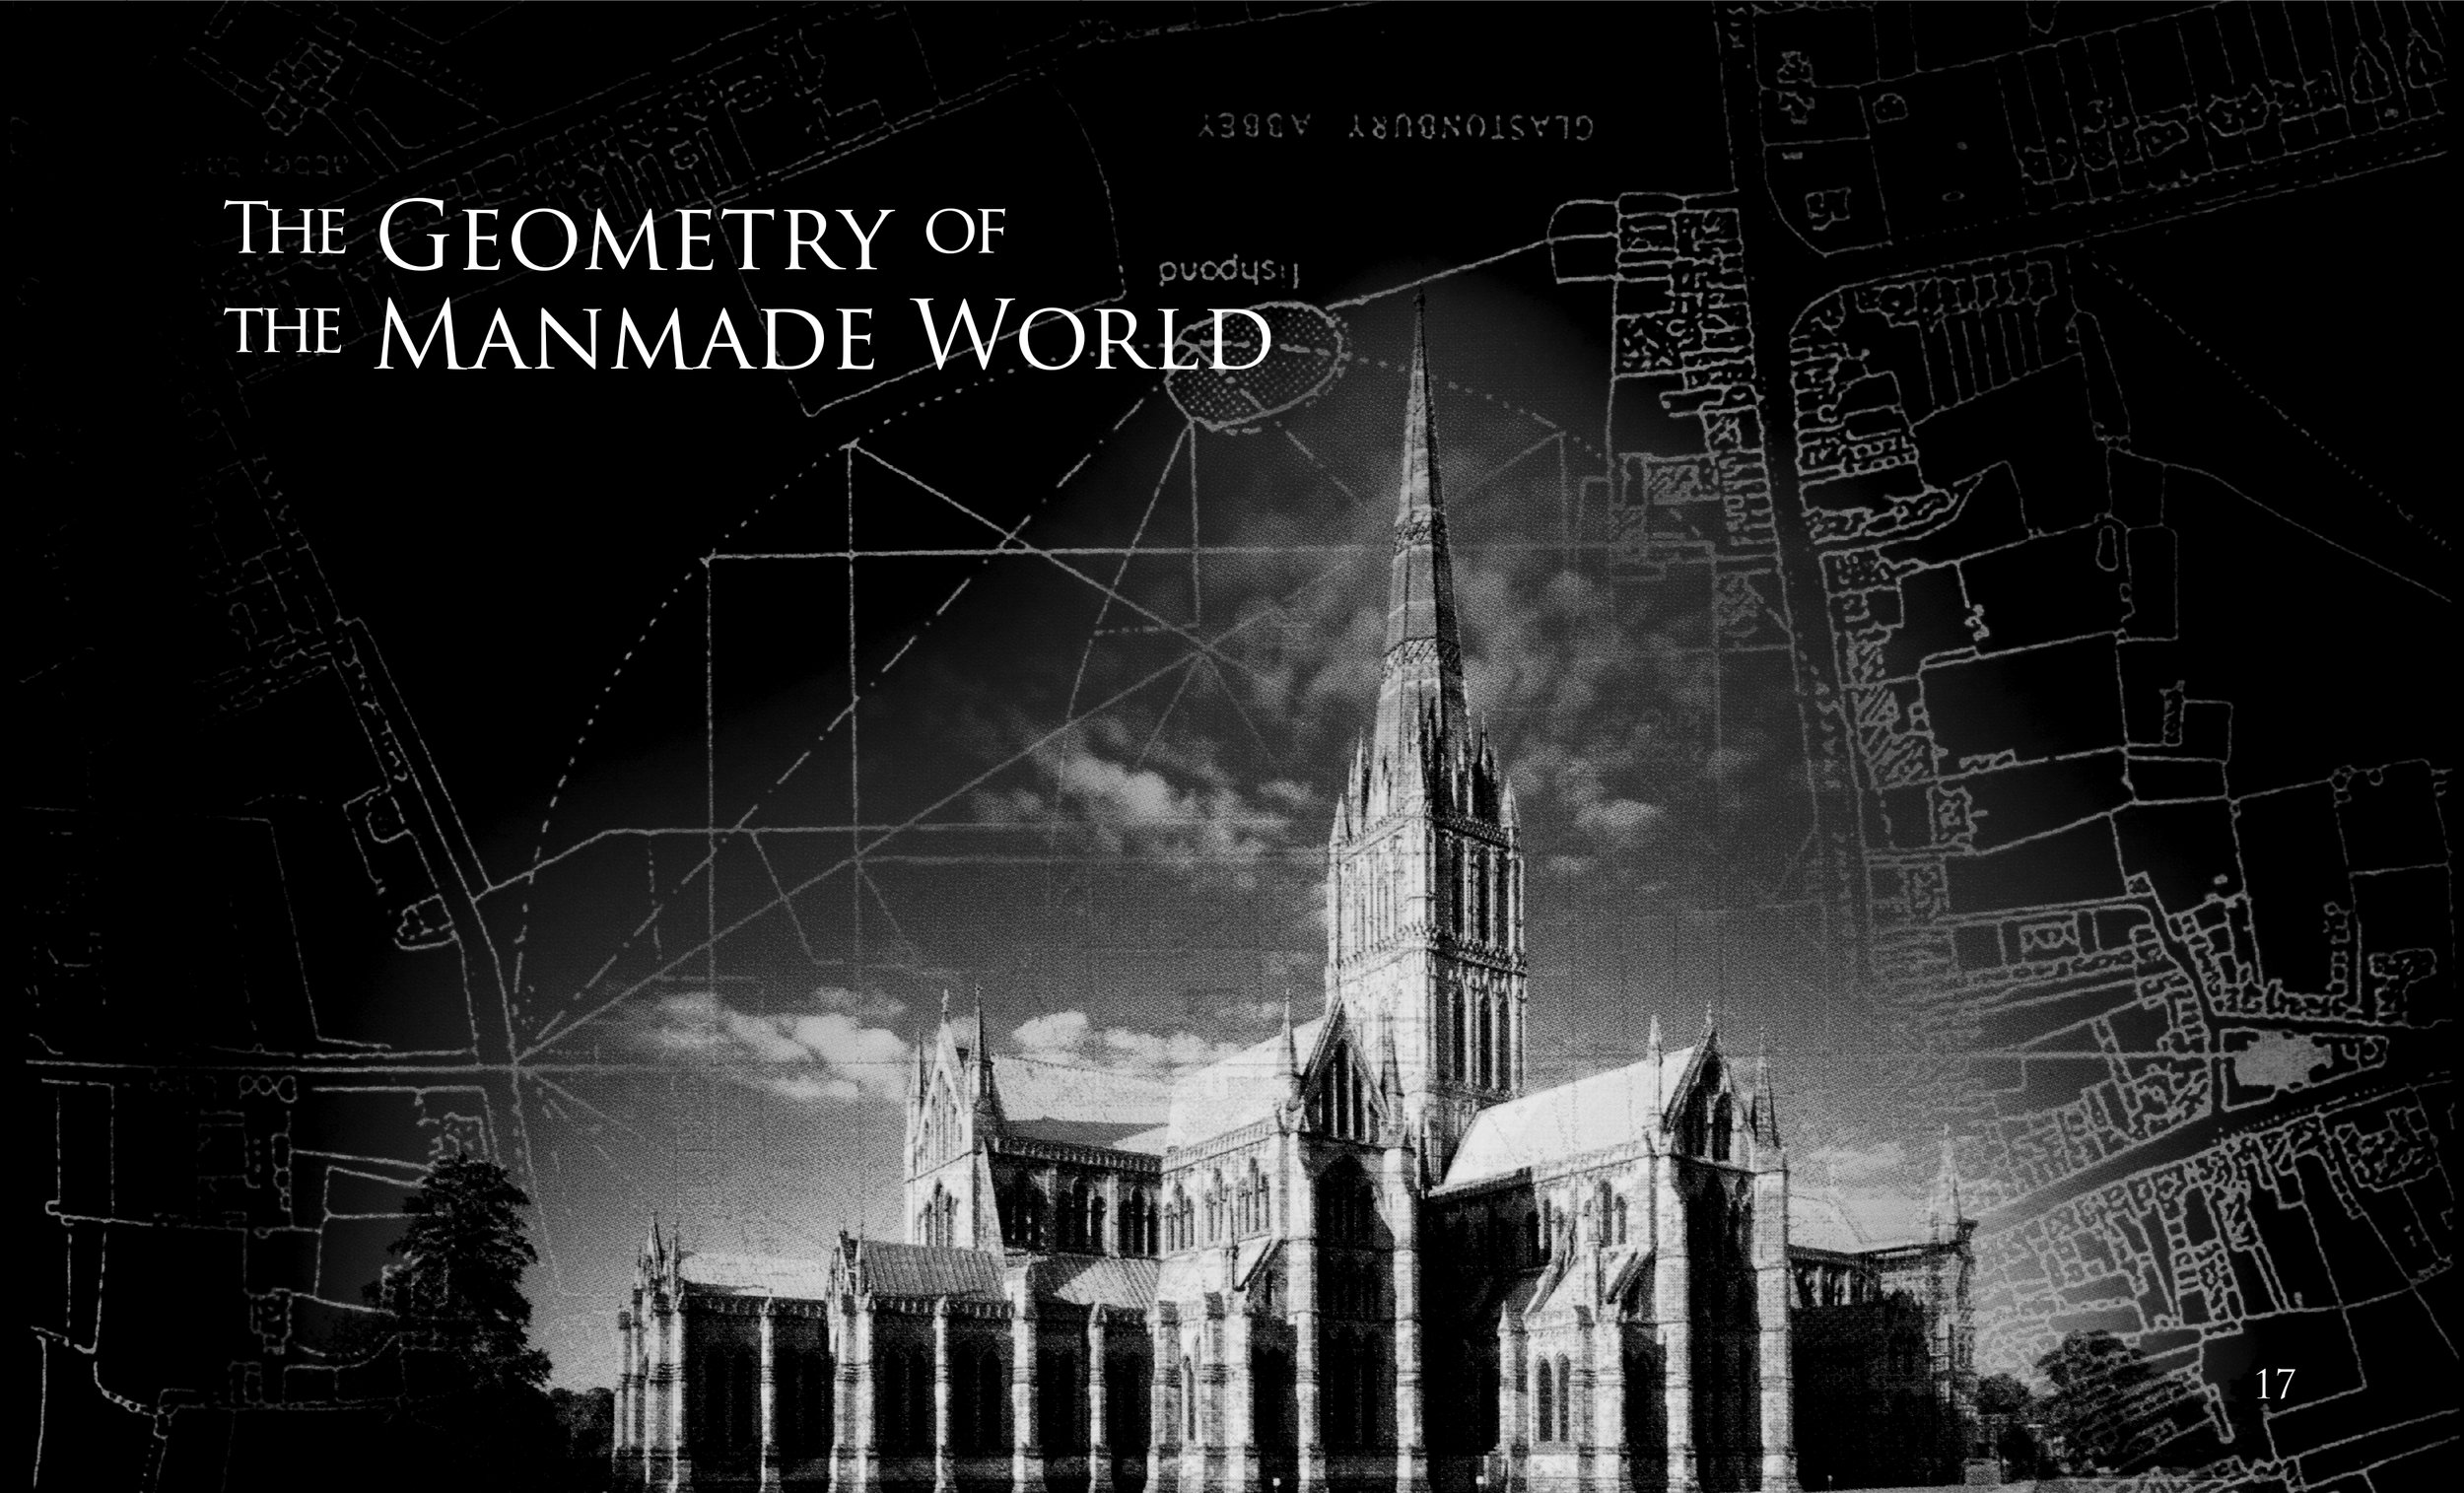 The introduction to the section for geometry existing in the manmade world - this is a flat taken direct from the production file.